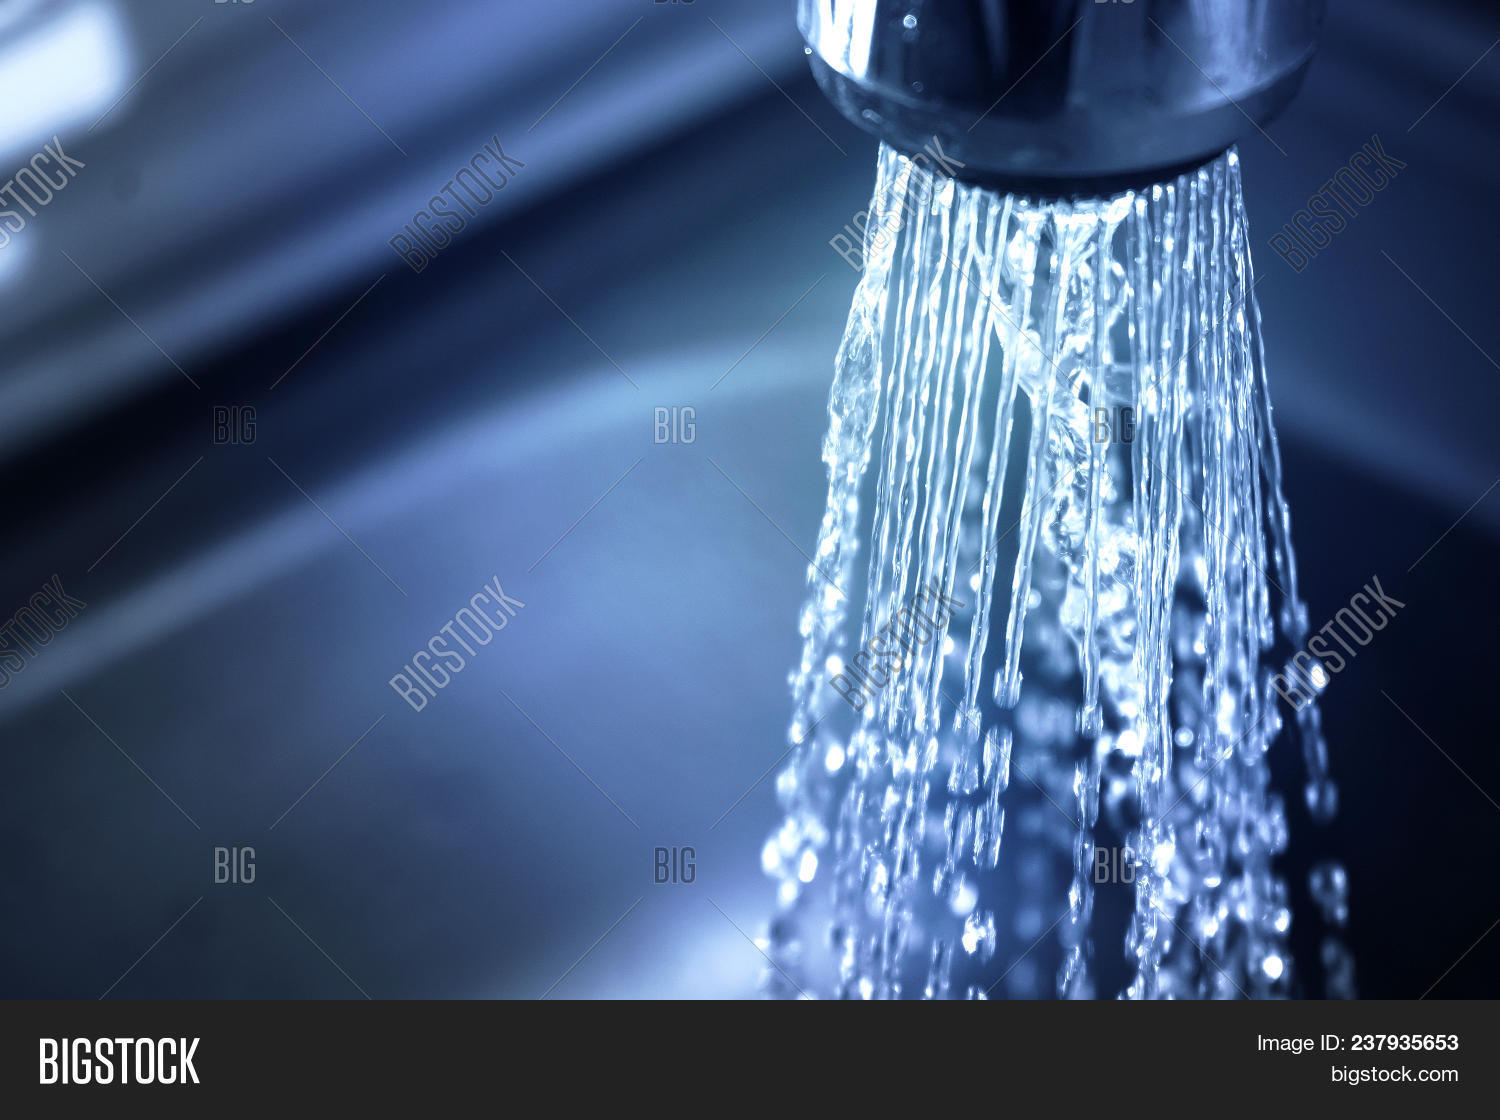 background,bathroom,blue,chrome,clean,closeup,cold,domestic,drink,drip,drop,faucet,flow,flowing,home,hot,kitchen,liquid,metal,open,problems,reducing,running,saving,shiny,silver,sink,spray,steel,supply,tap,use,water,wet,white